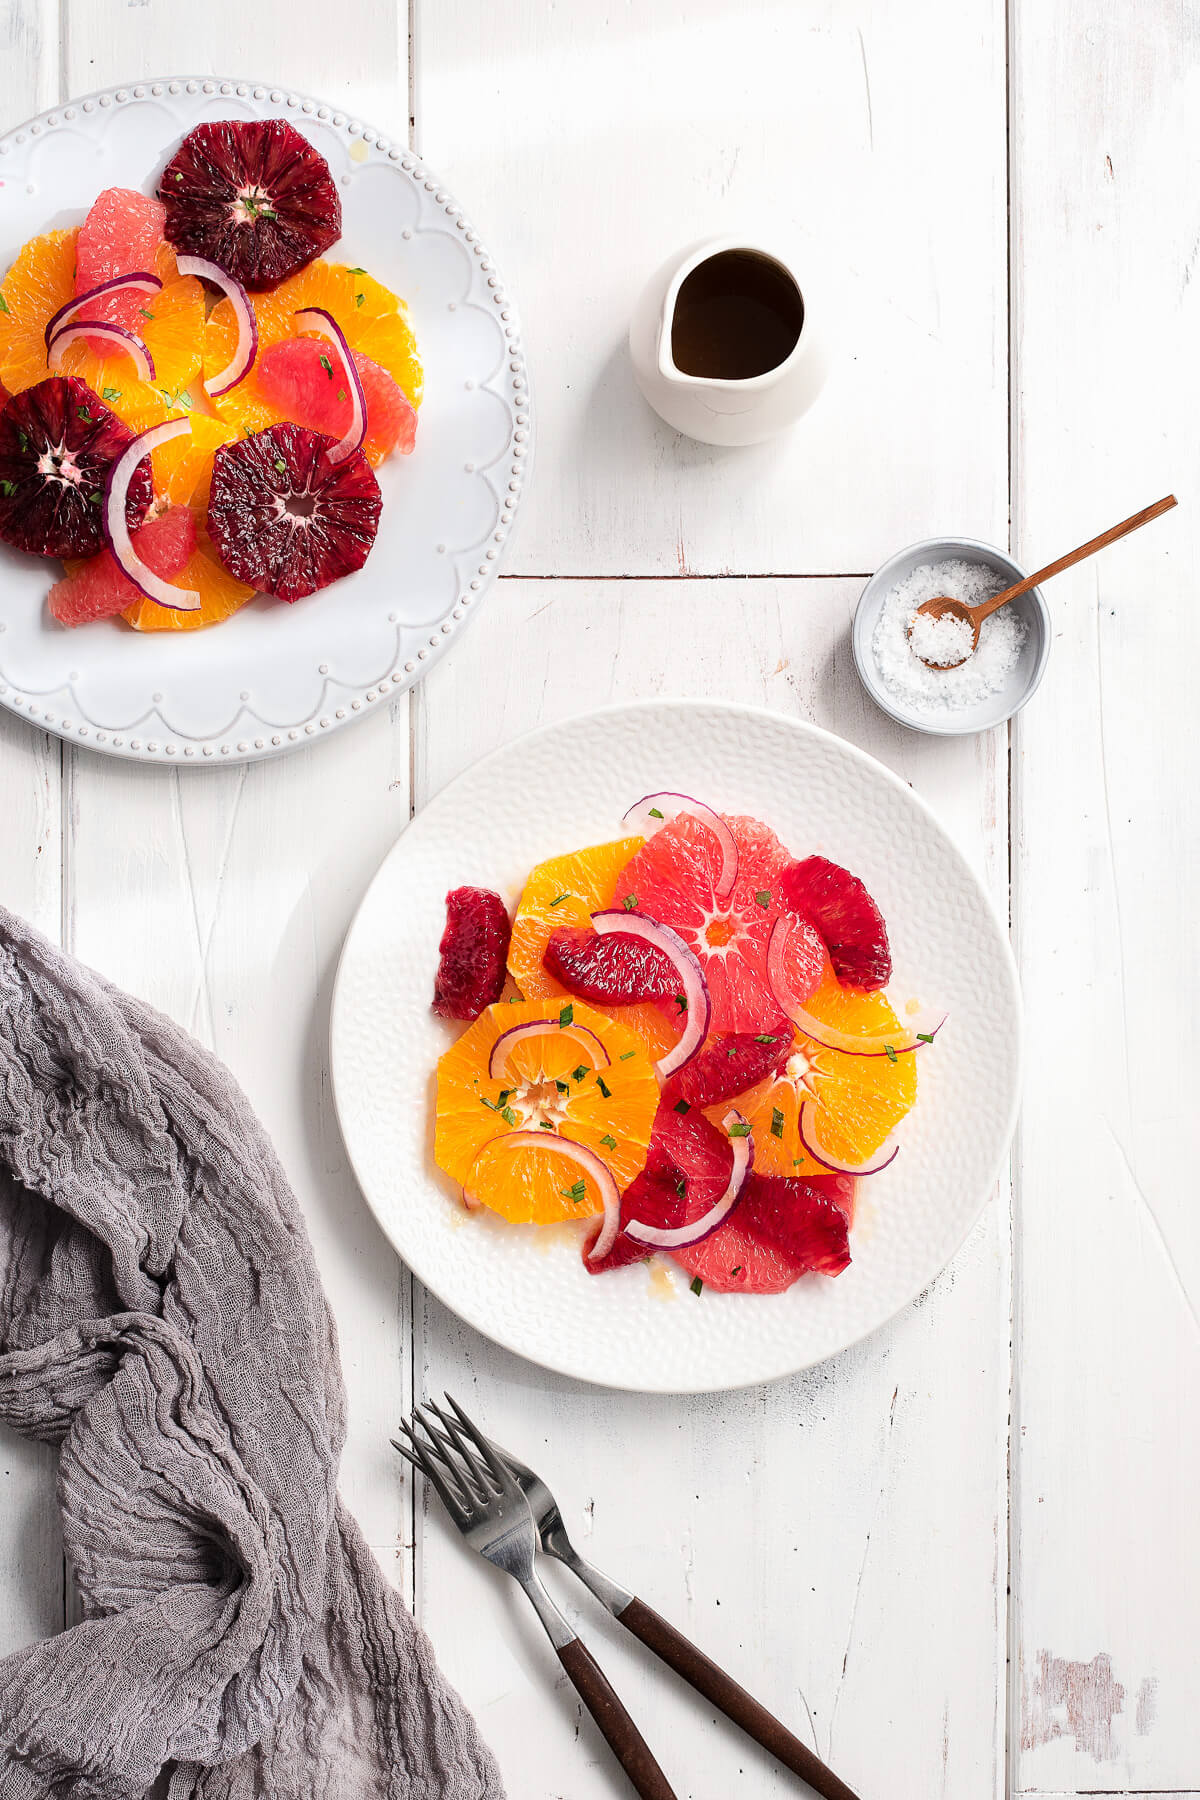 Overhead of two plates of citrus salad with grapefruit, navel oranges, and blood oranges.